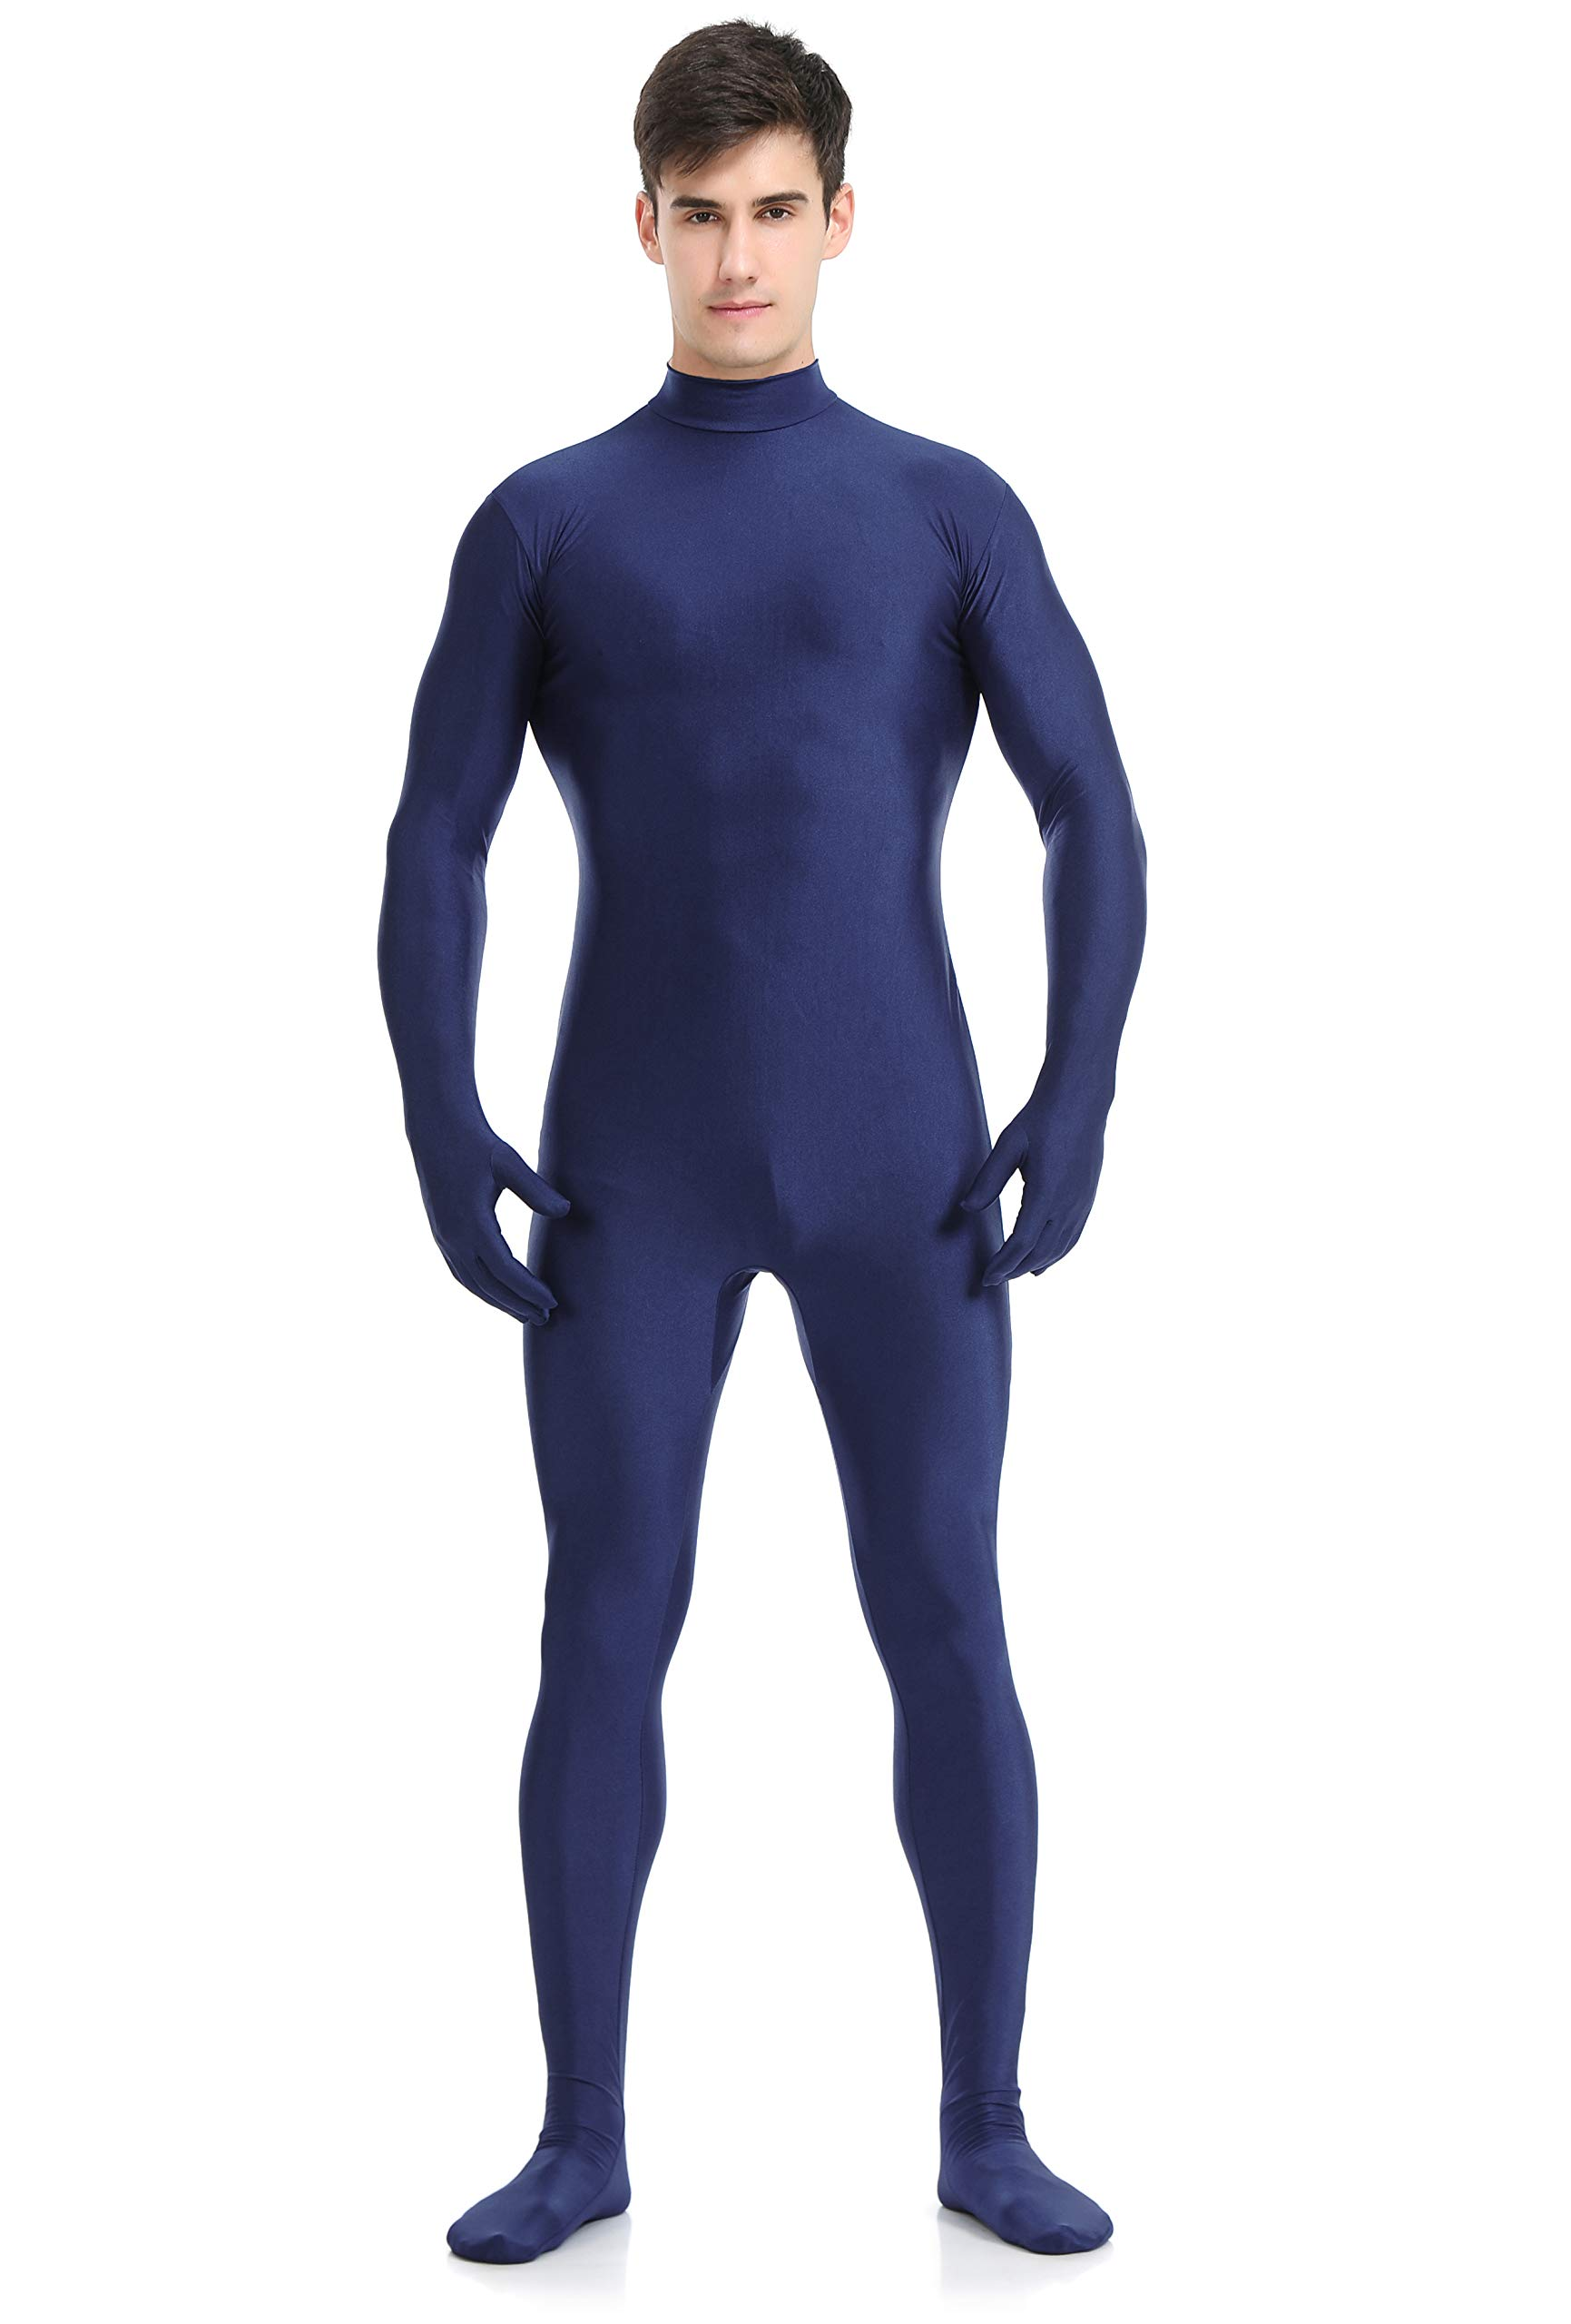 speerise Adult Full Lycra Spandex Bodysuit Unitard Costume Zentai Suit Without Hood, S, Navy by speerise